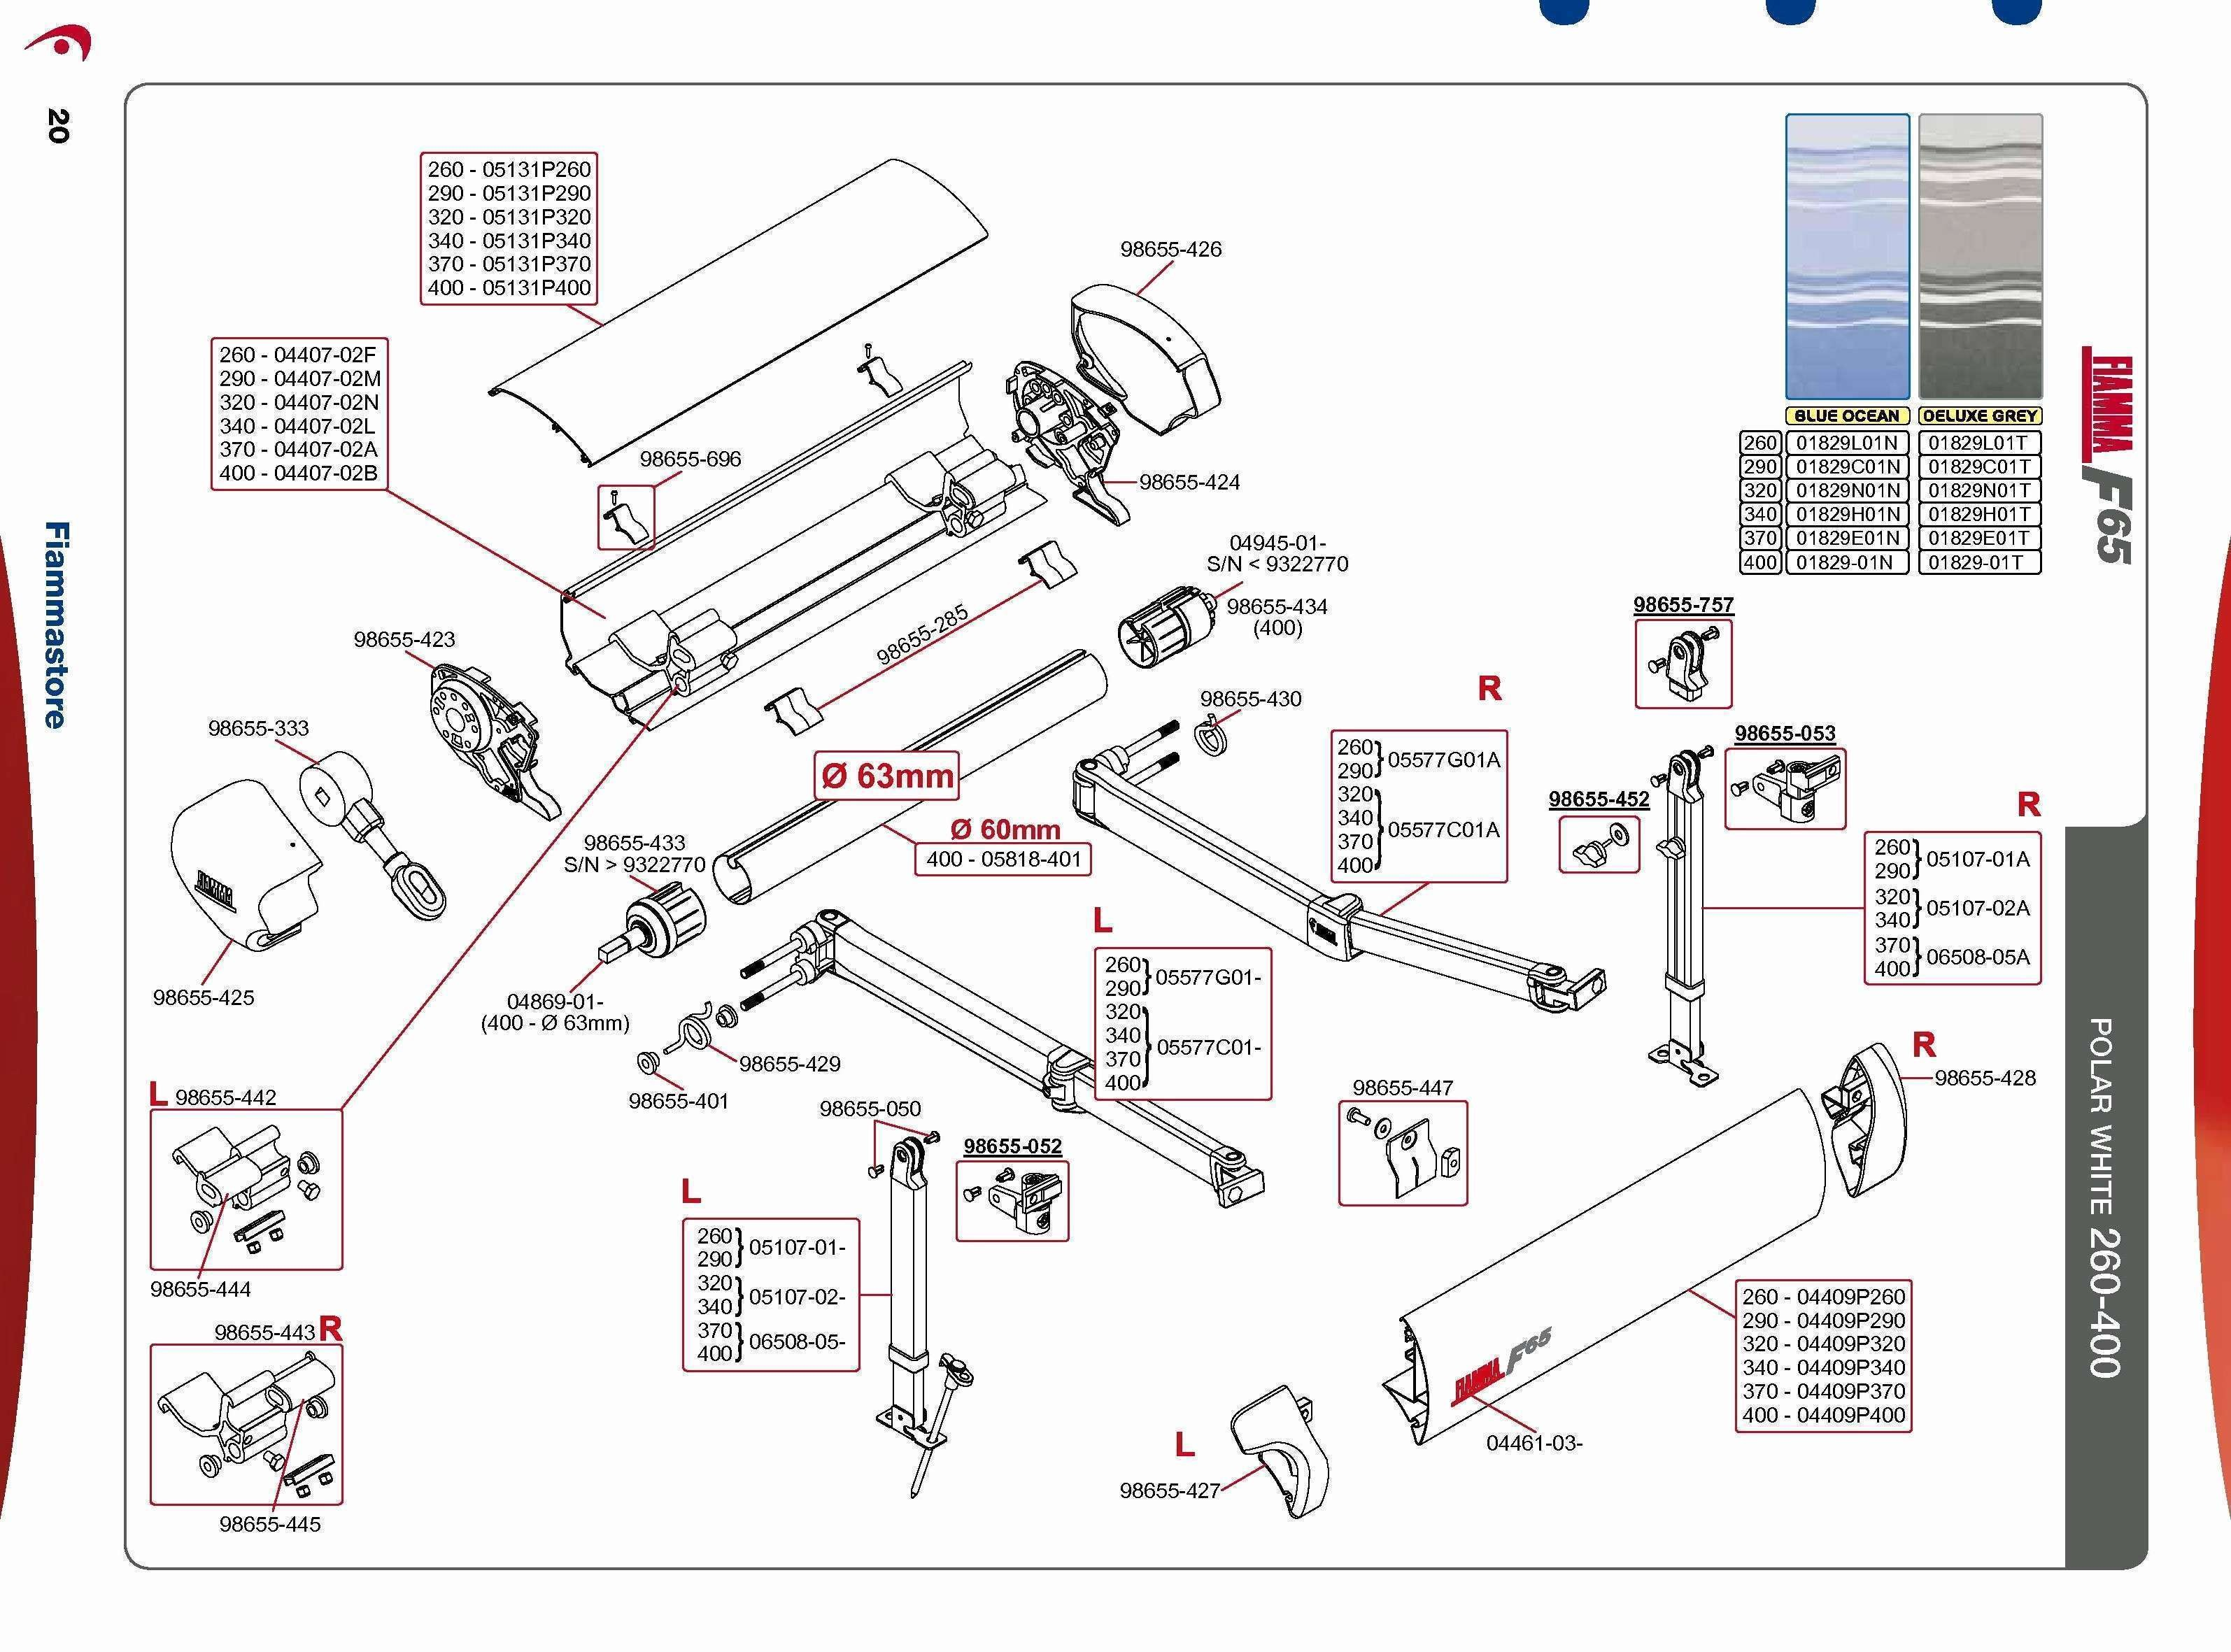 Carefree Awning Parts Diagram Sunsetter Awning Parts Beautiful Carefree Awning Parts Diagram Of Carefree Awning Parts Diagram